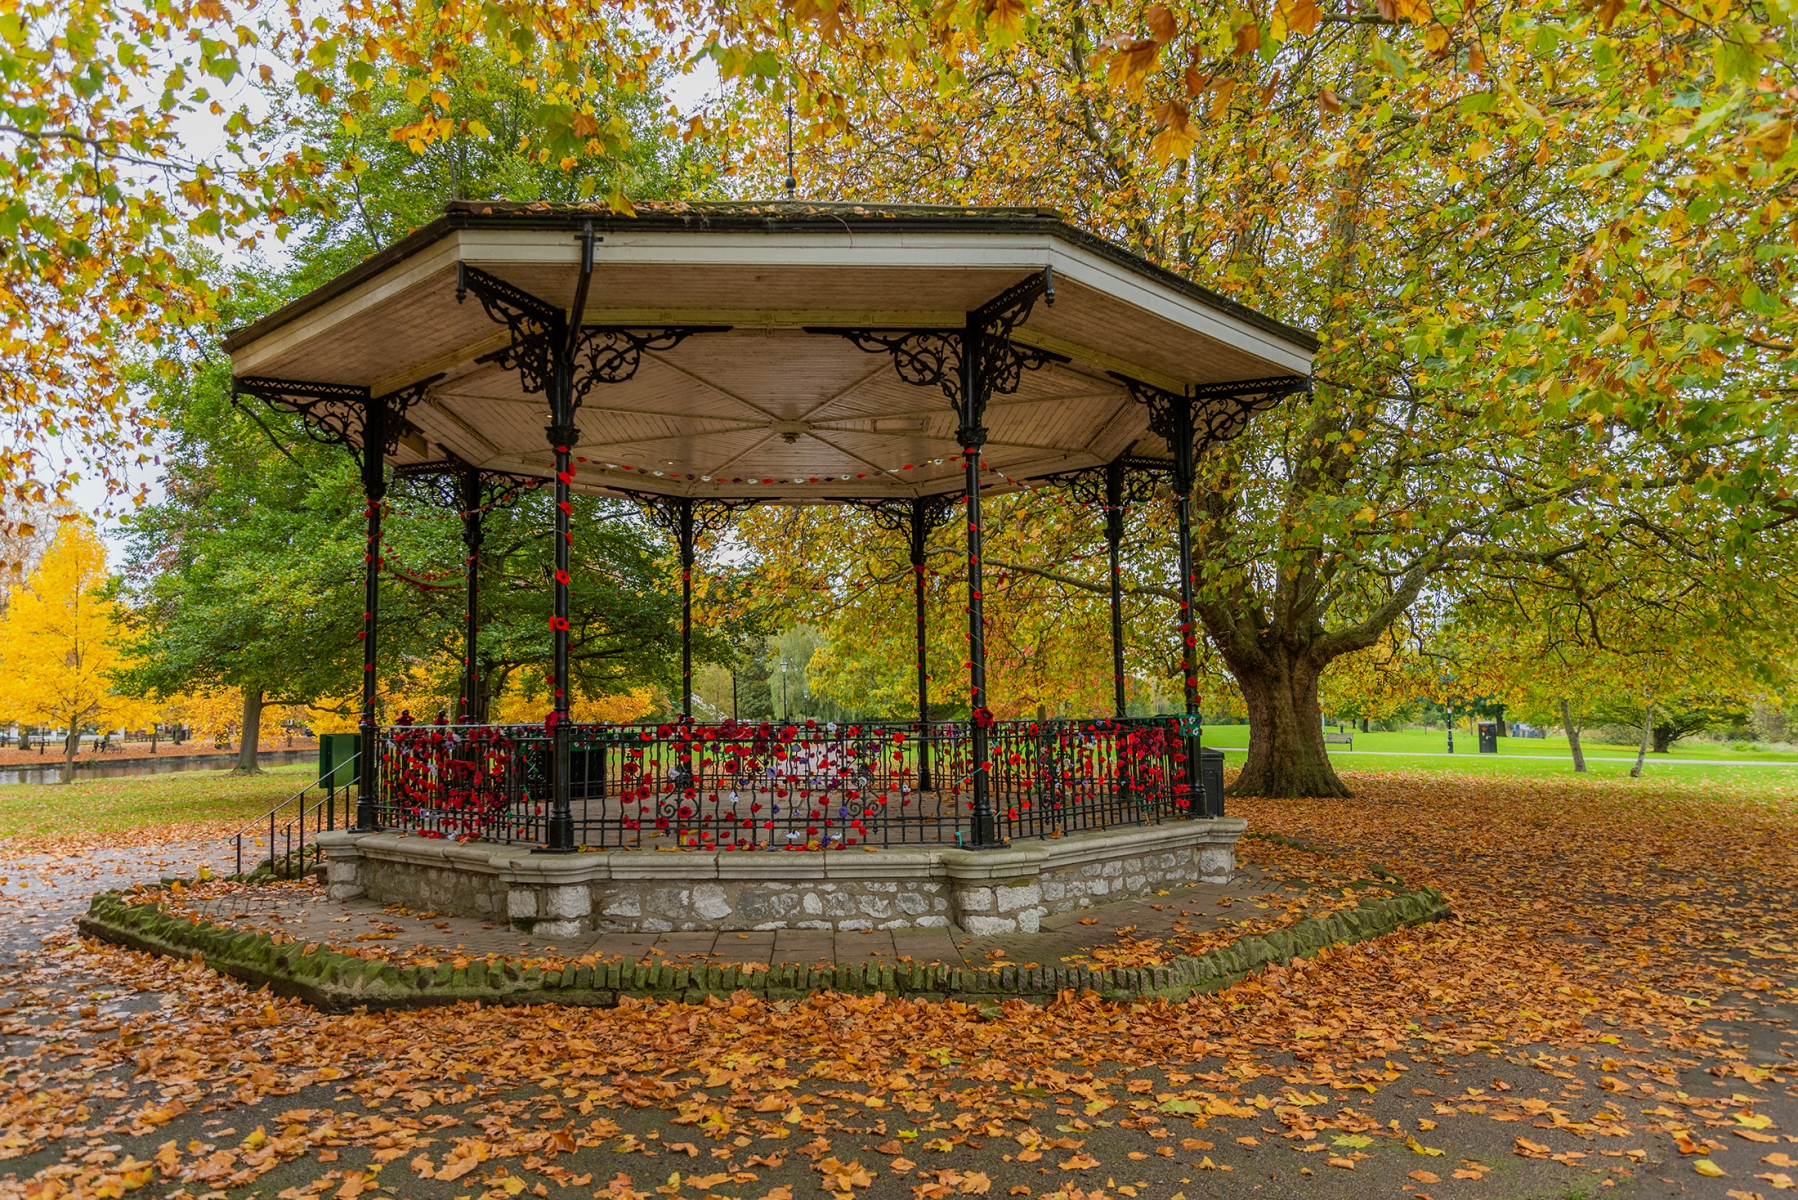 The Bandstand, The Embankment, Bedford in Autumn